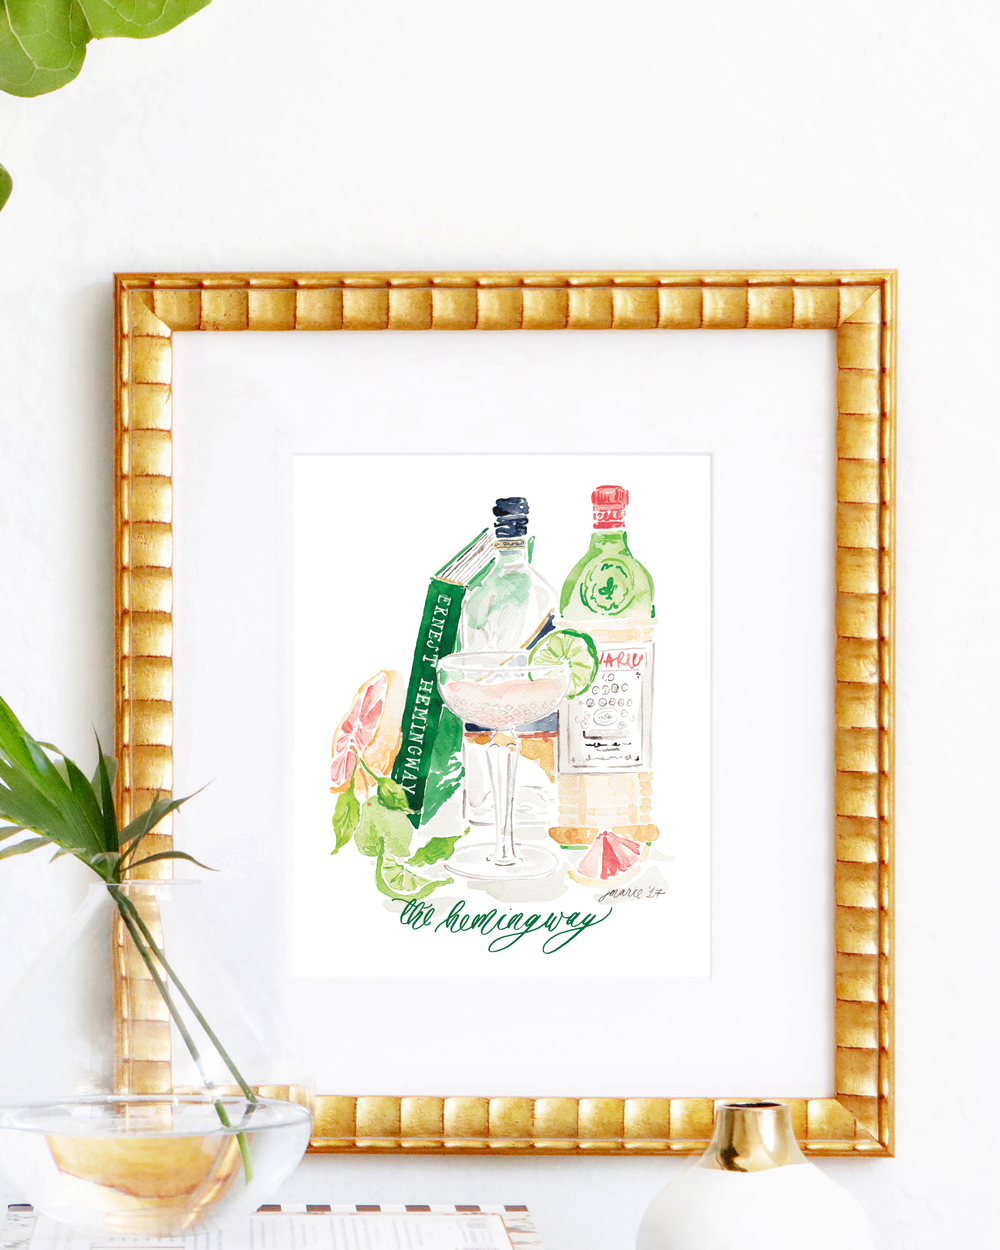 Classic Hemingway Daiquiri cocktail recipe | Hemingway Daiquiri watercolor art print by Simply Jessica Marie | SC Stockshop